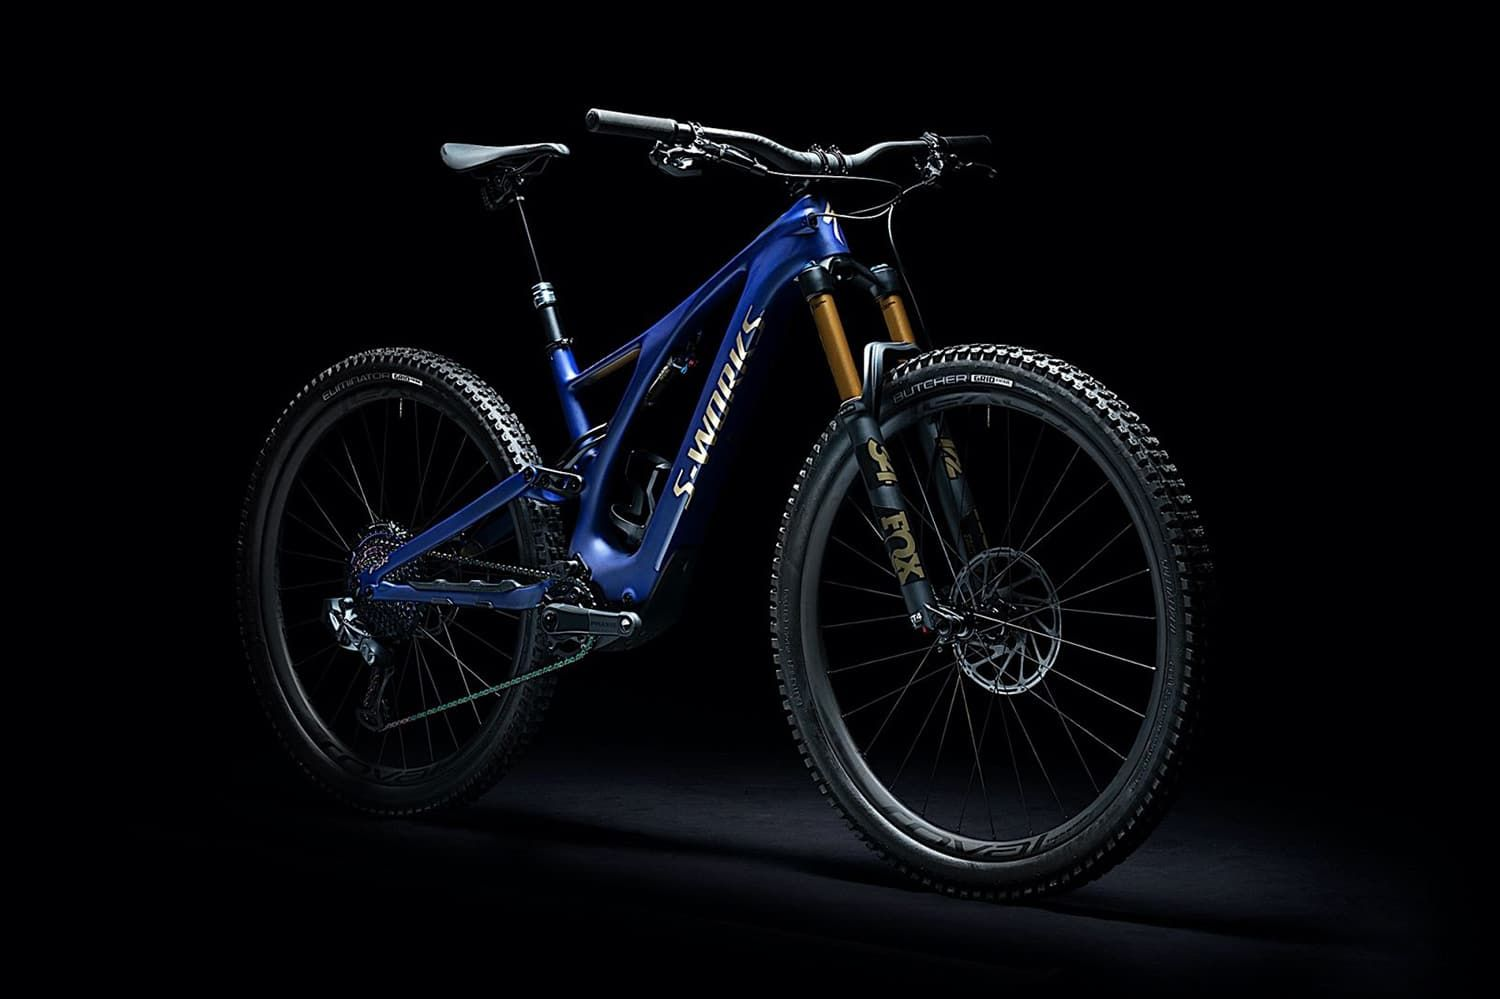 The Superlight Mountain Bike With Agility And Assistance In 2020 Bike Magazine